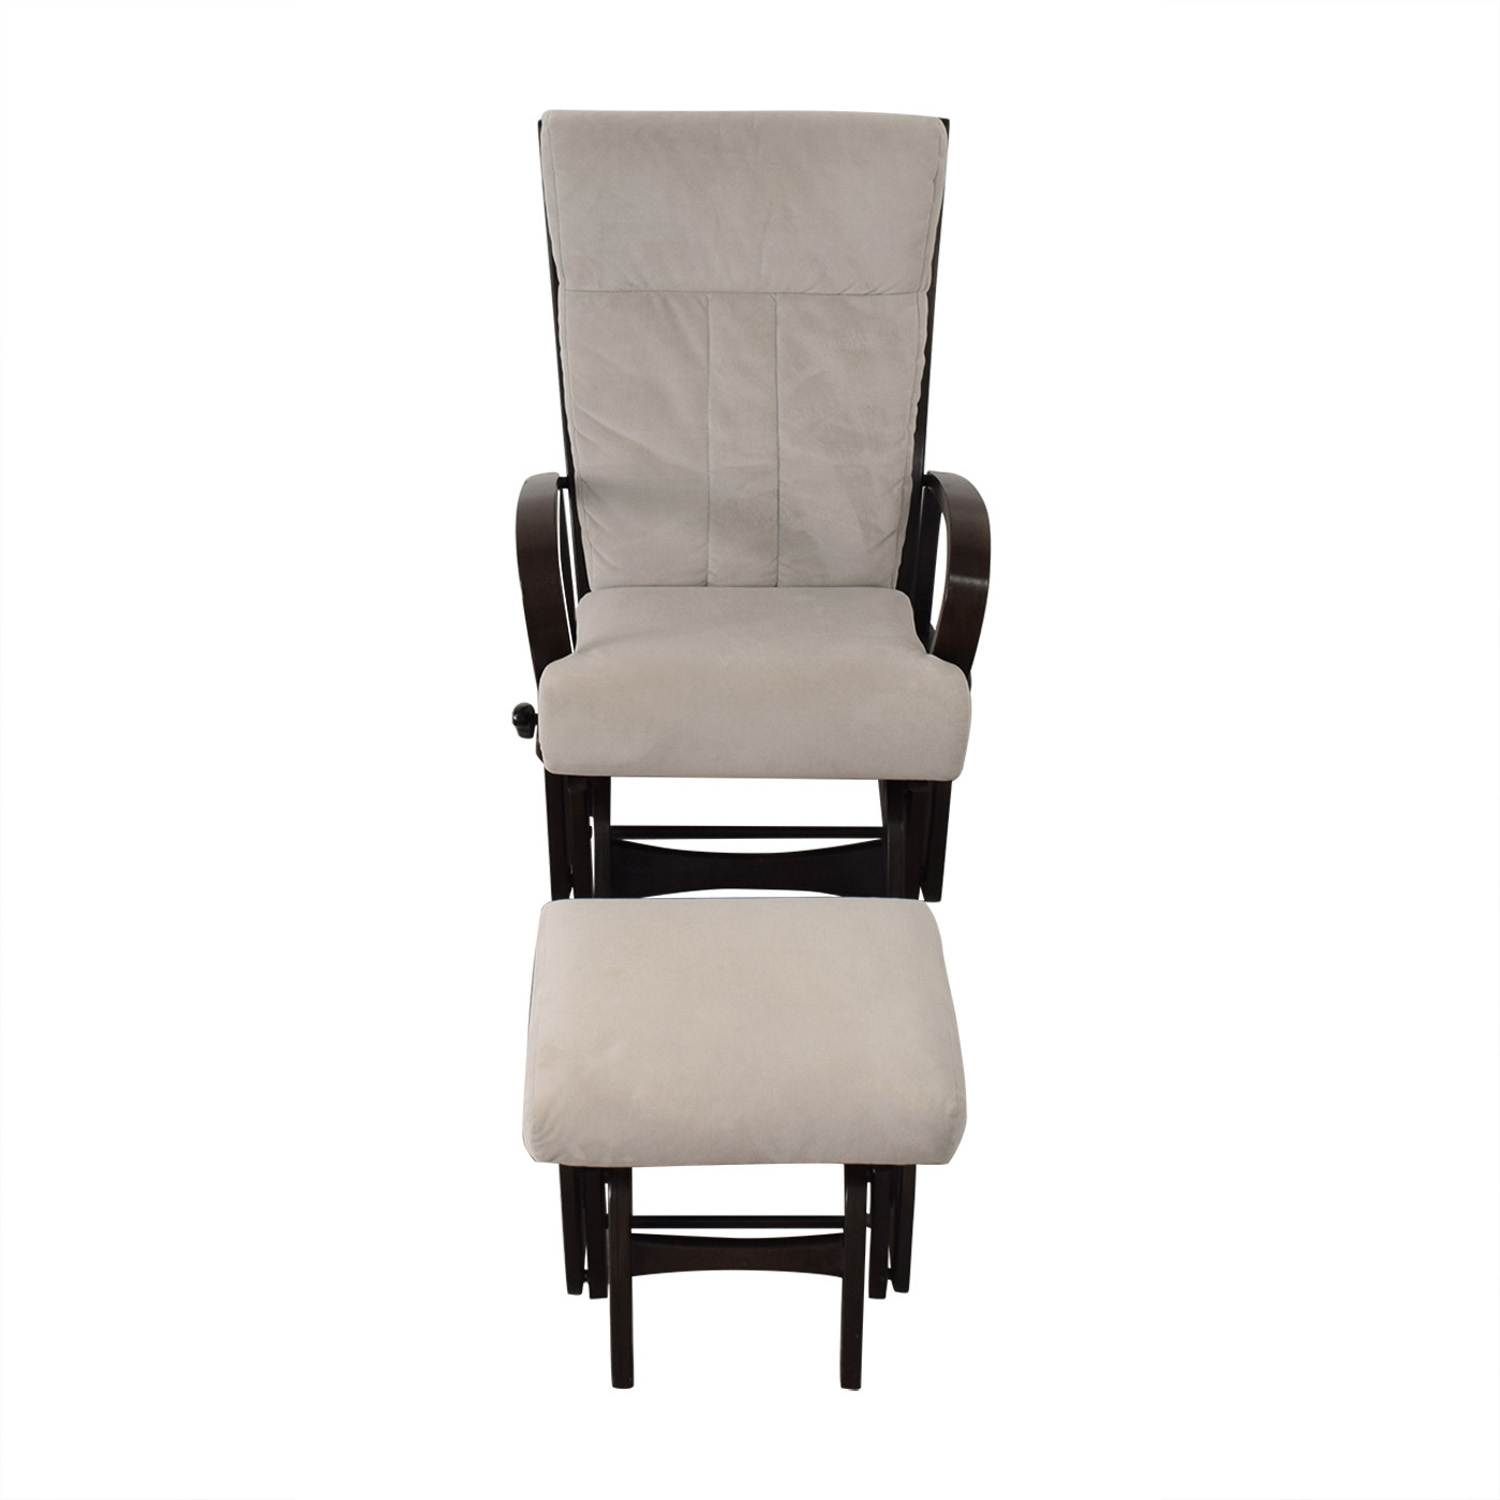 Dutailier Dutailier Wood Frame and Grey Upholstered Armchair and Ottoman for sale